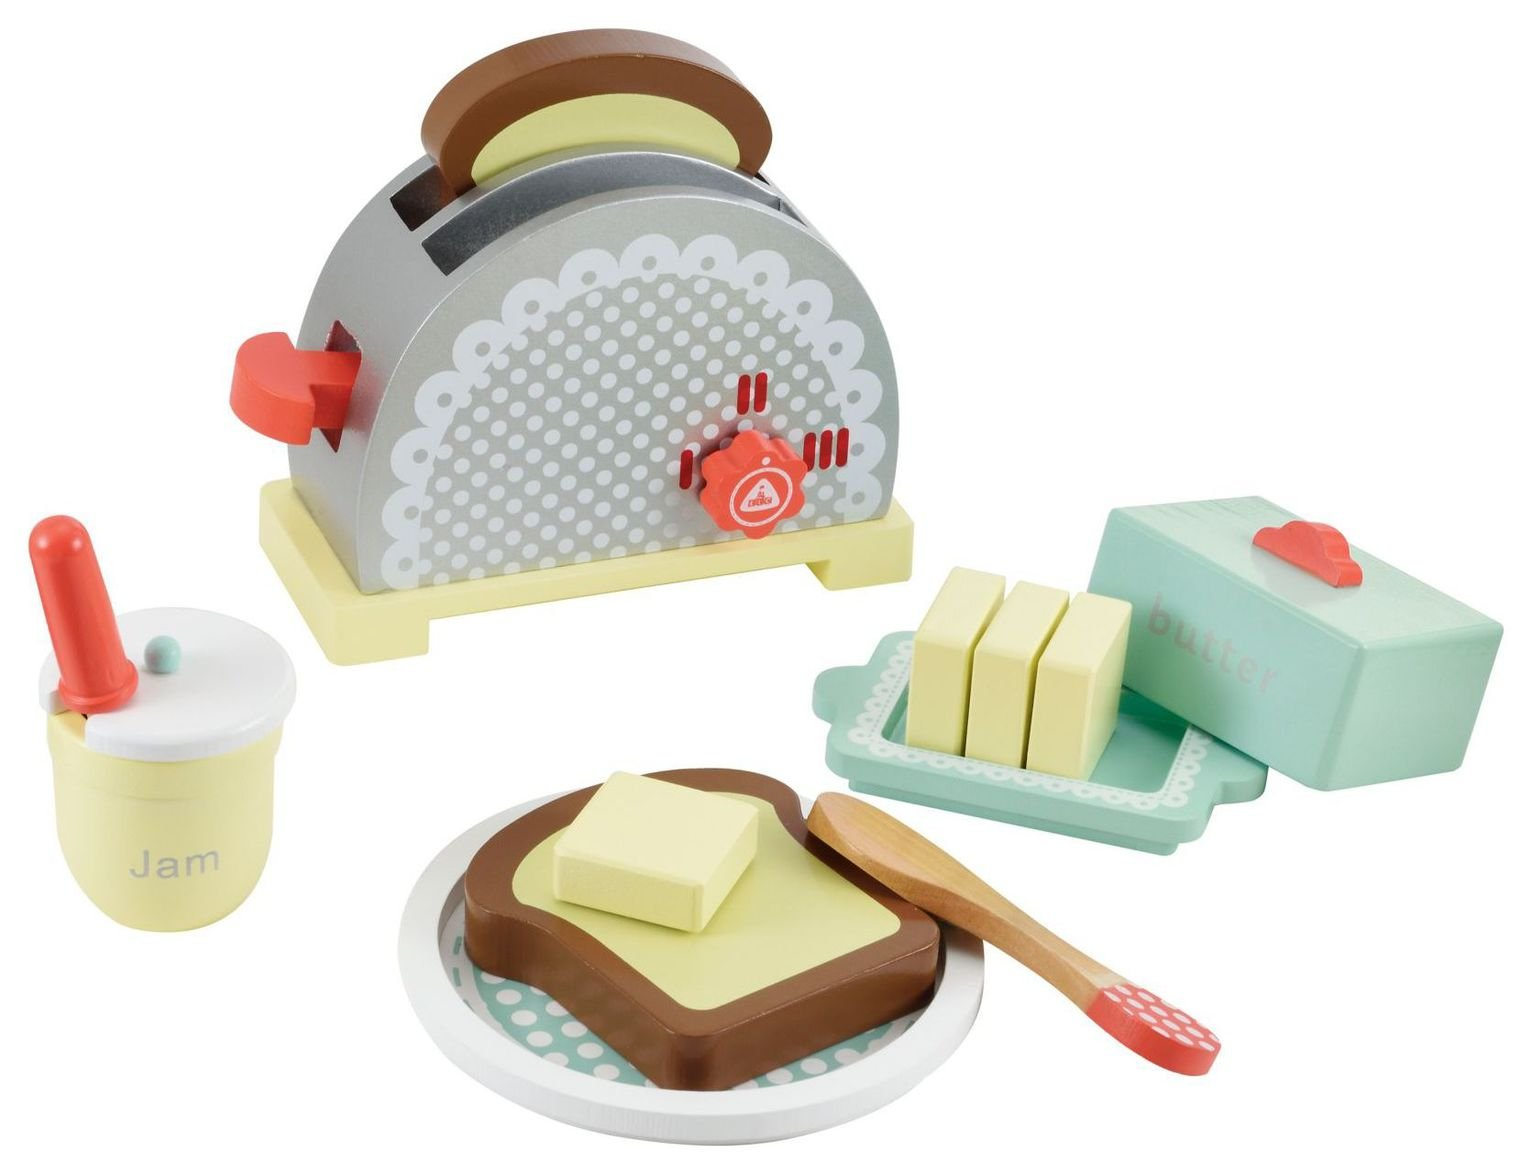 Image of ELC Wooden Toaster Set.